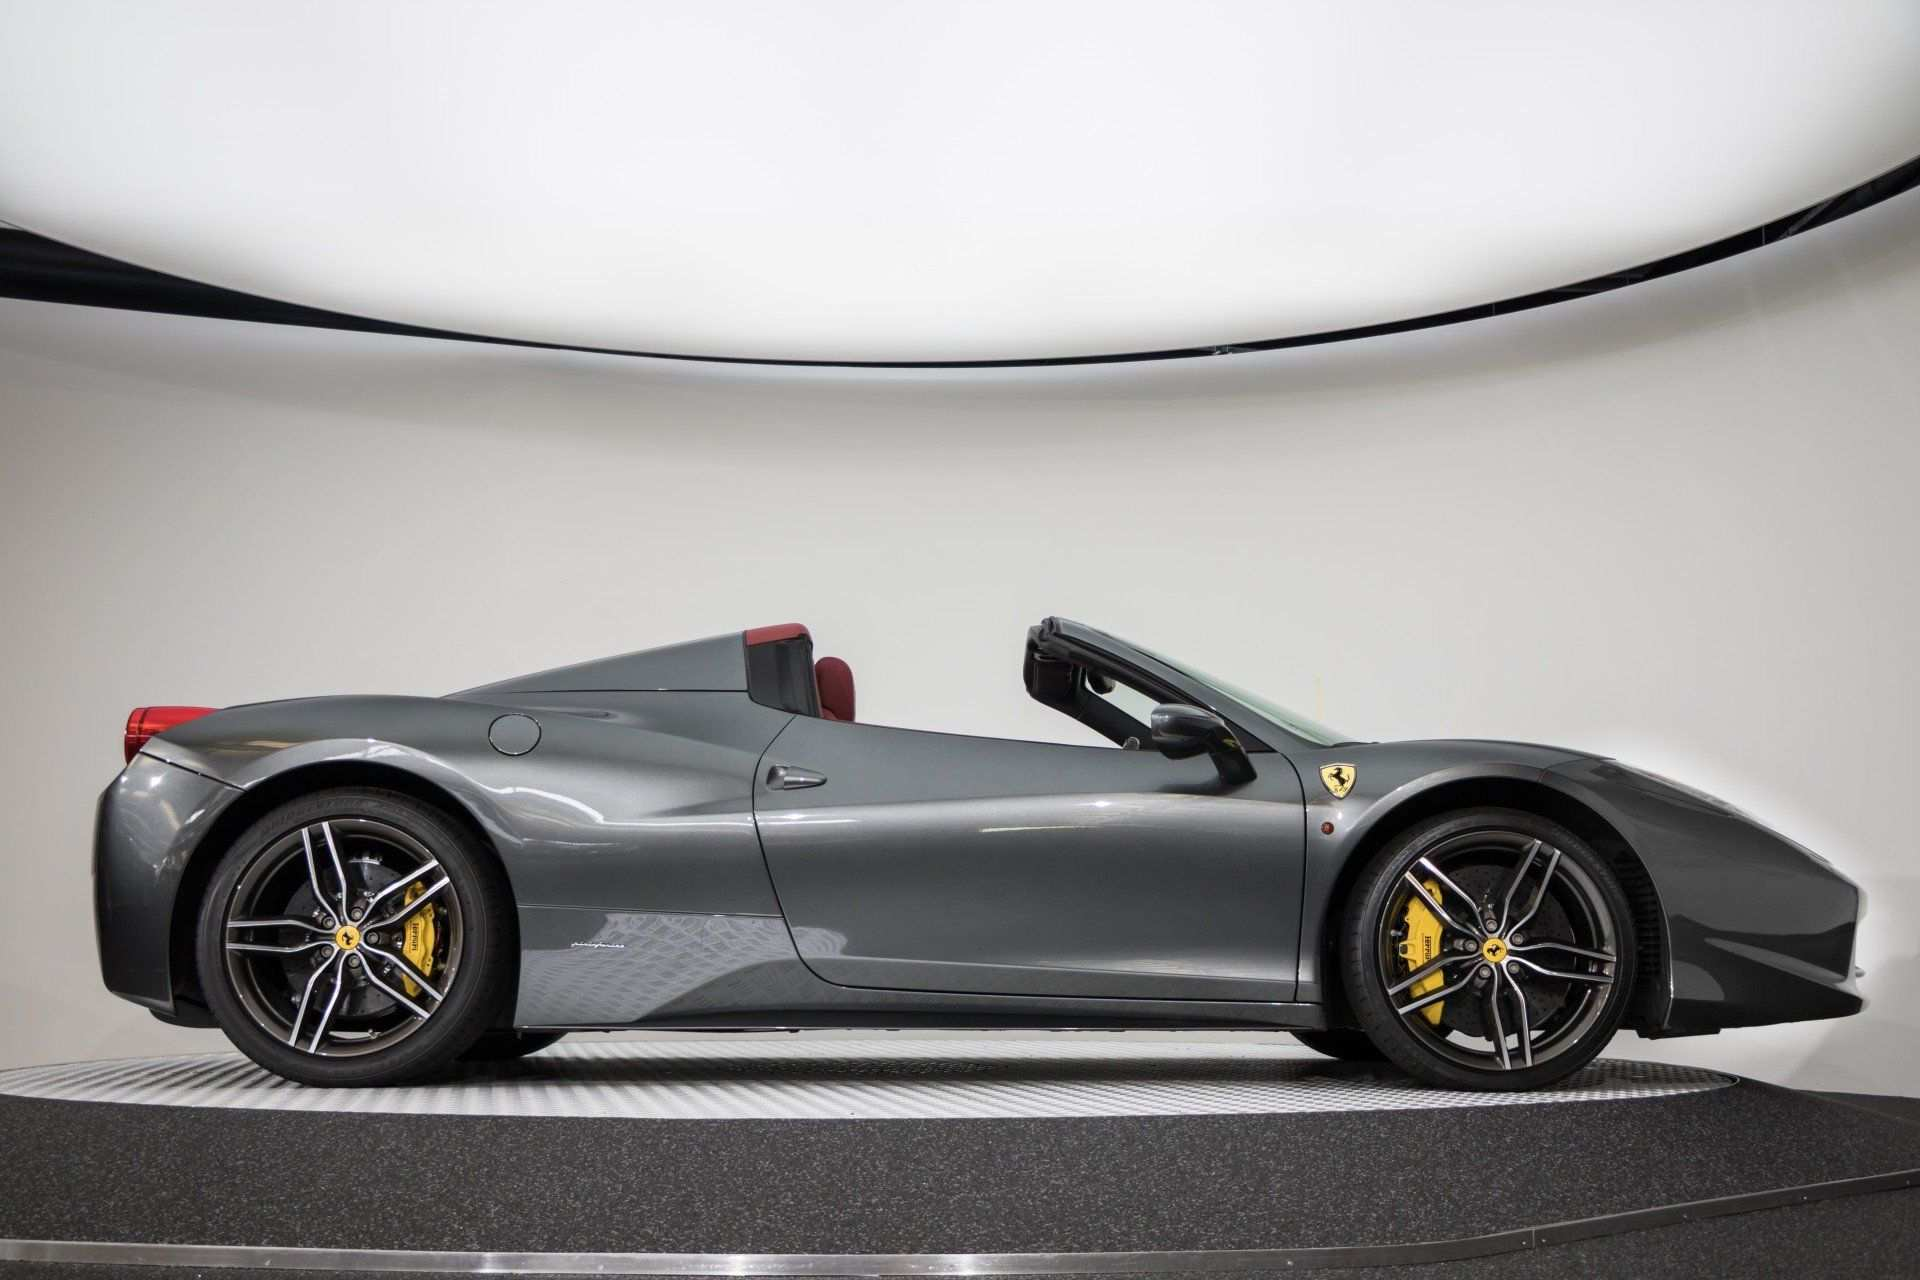 68 All New 2020 Ferrari 458 Spider Exterior and Interior for 2020 Ferrari 458 Spider